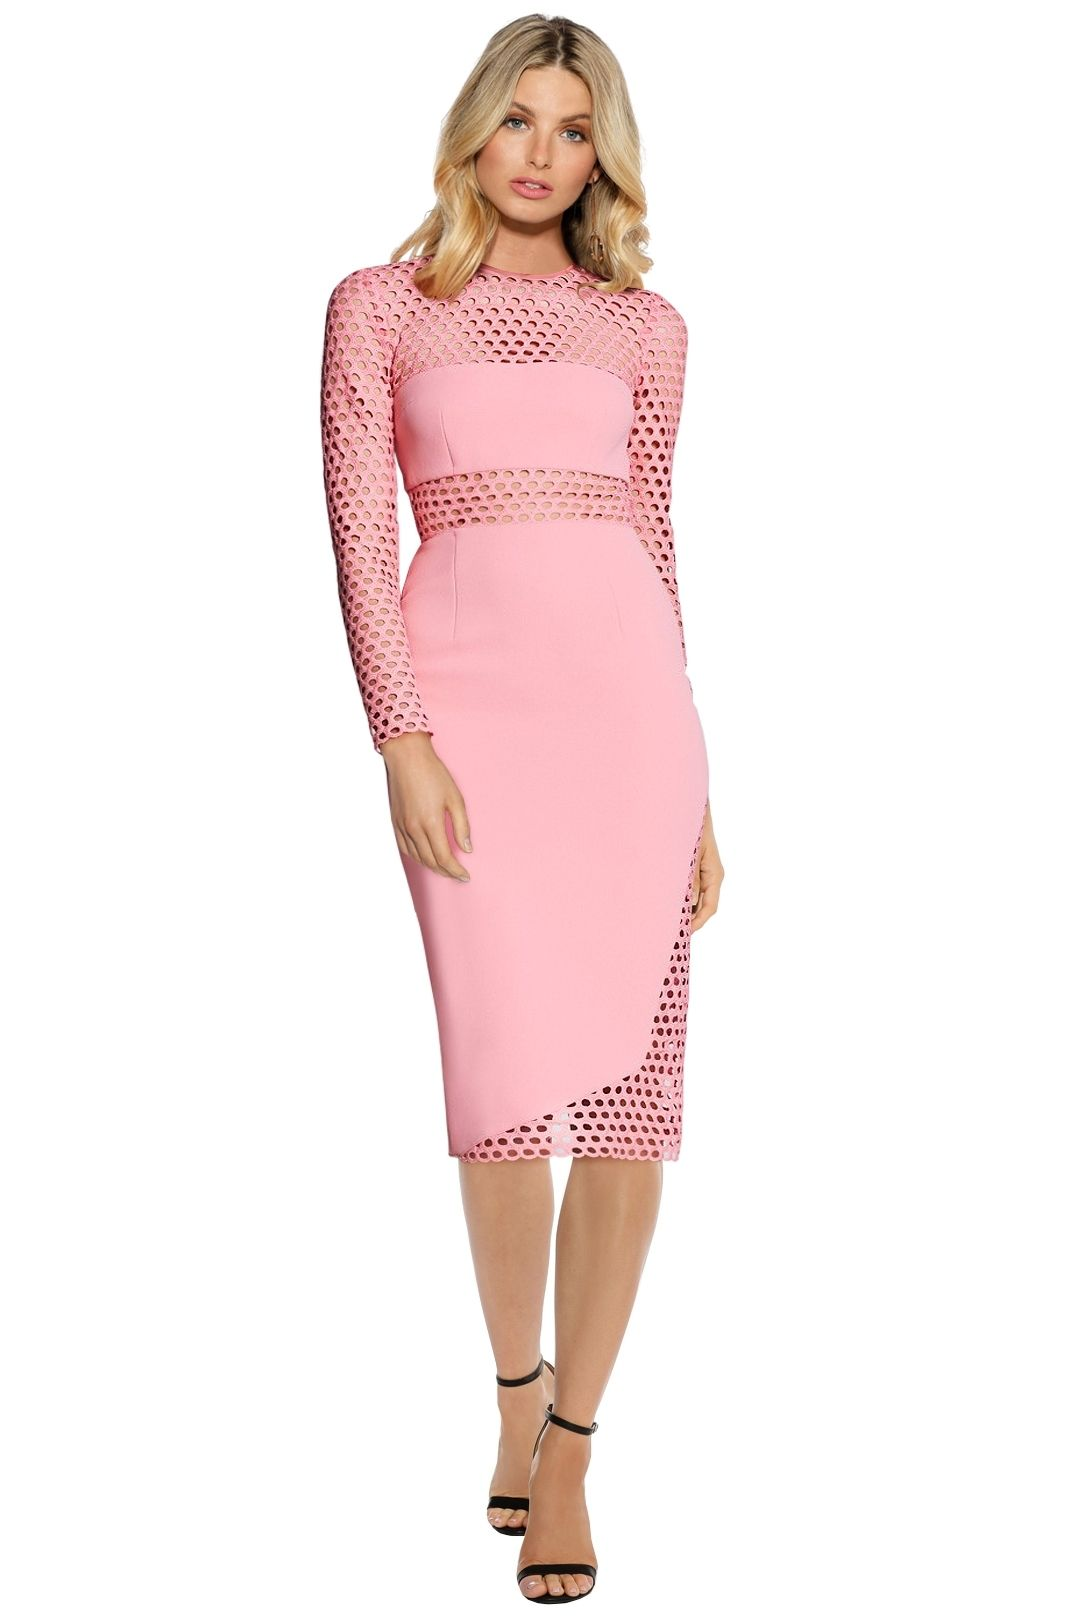 Yeojin Bae - Embroidered Net Double Crpe Zoe Dress - Pink - Front